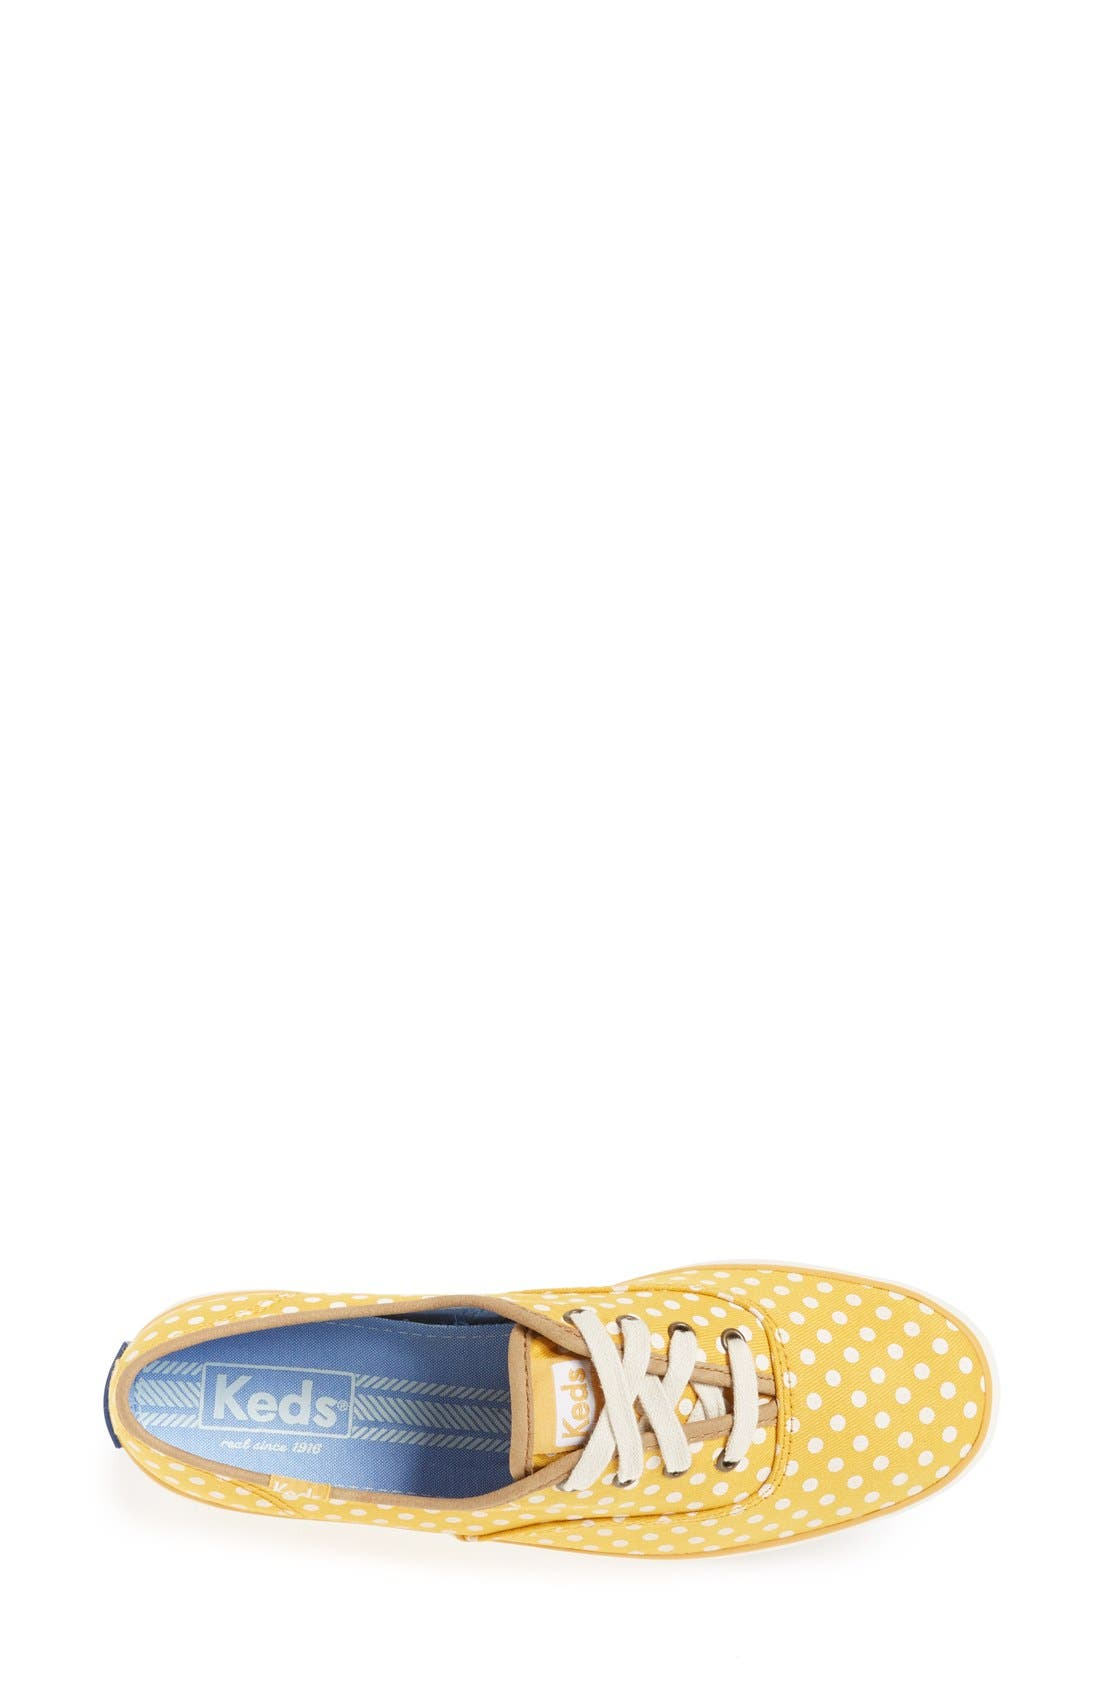 Alternate Image 3  - Keds® 'Champion - Dot' Sneaker (Women)